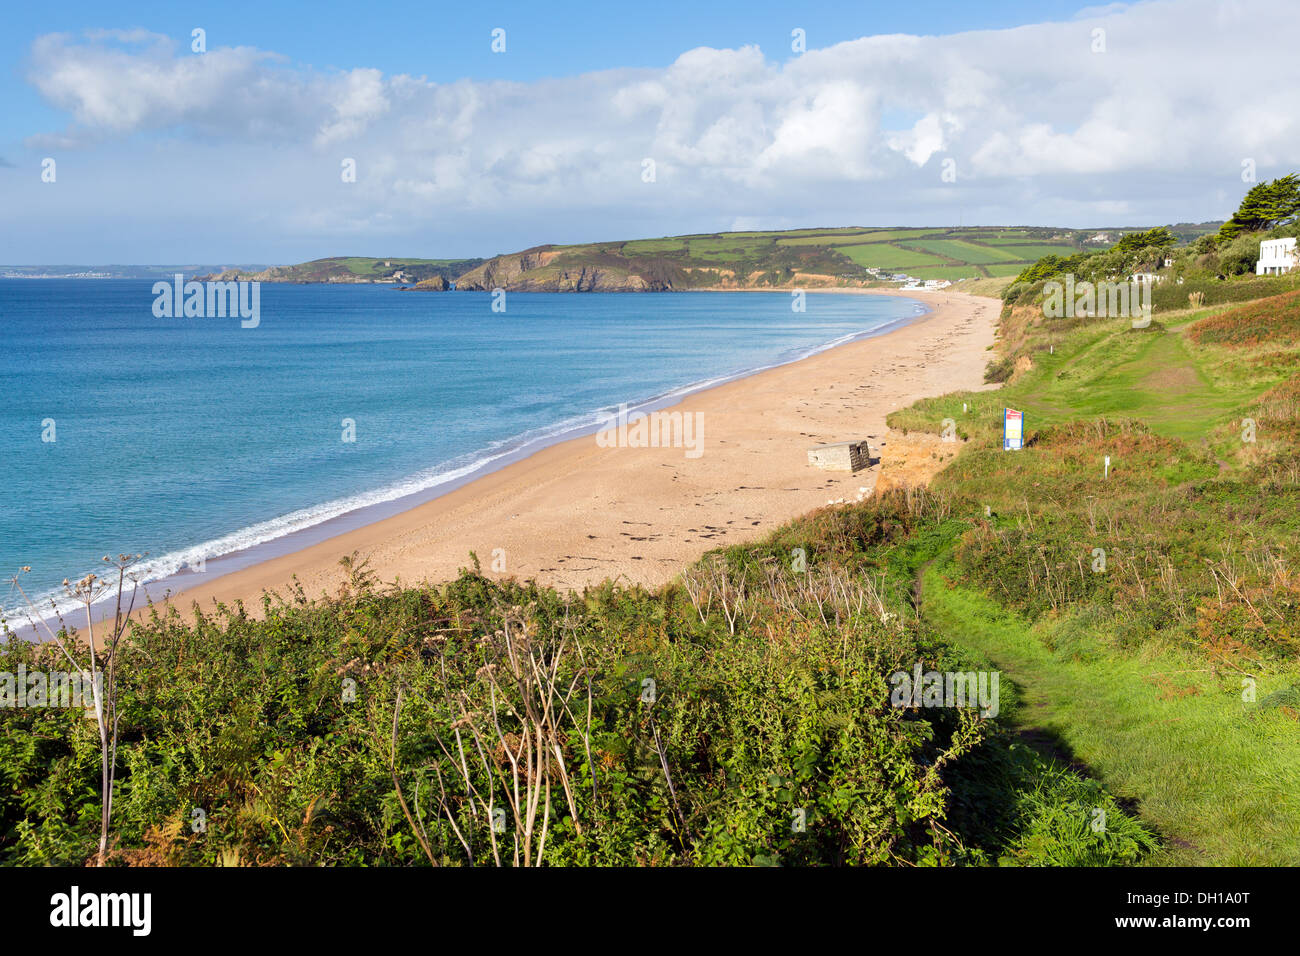 Coast Path Praa Sands Cornwall England between Penzance and Mullion with sandy beach and blue sky and sea - Stock Image